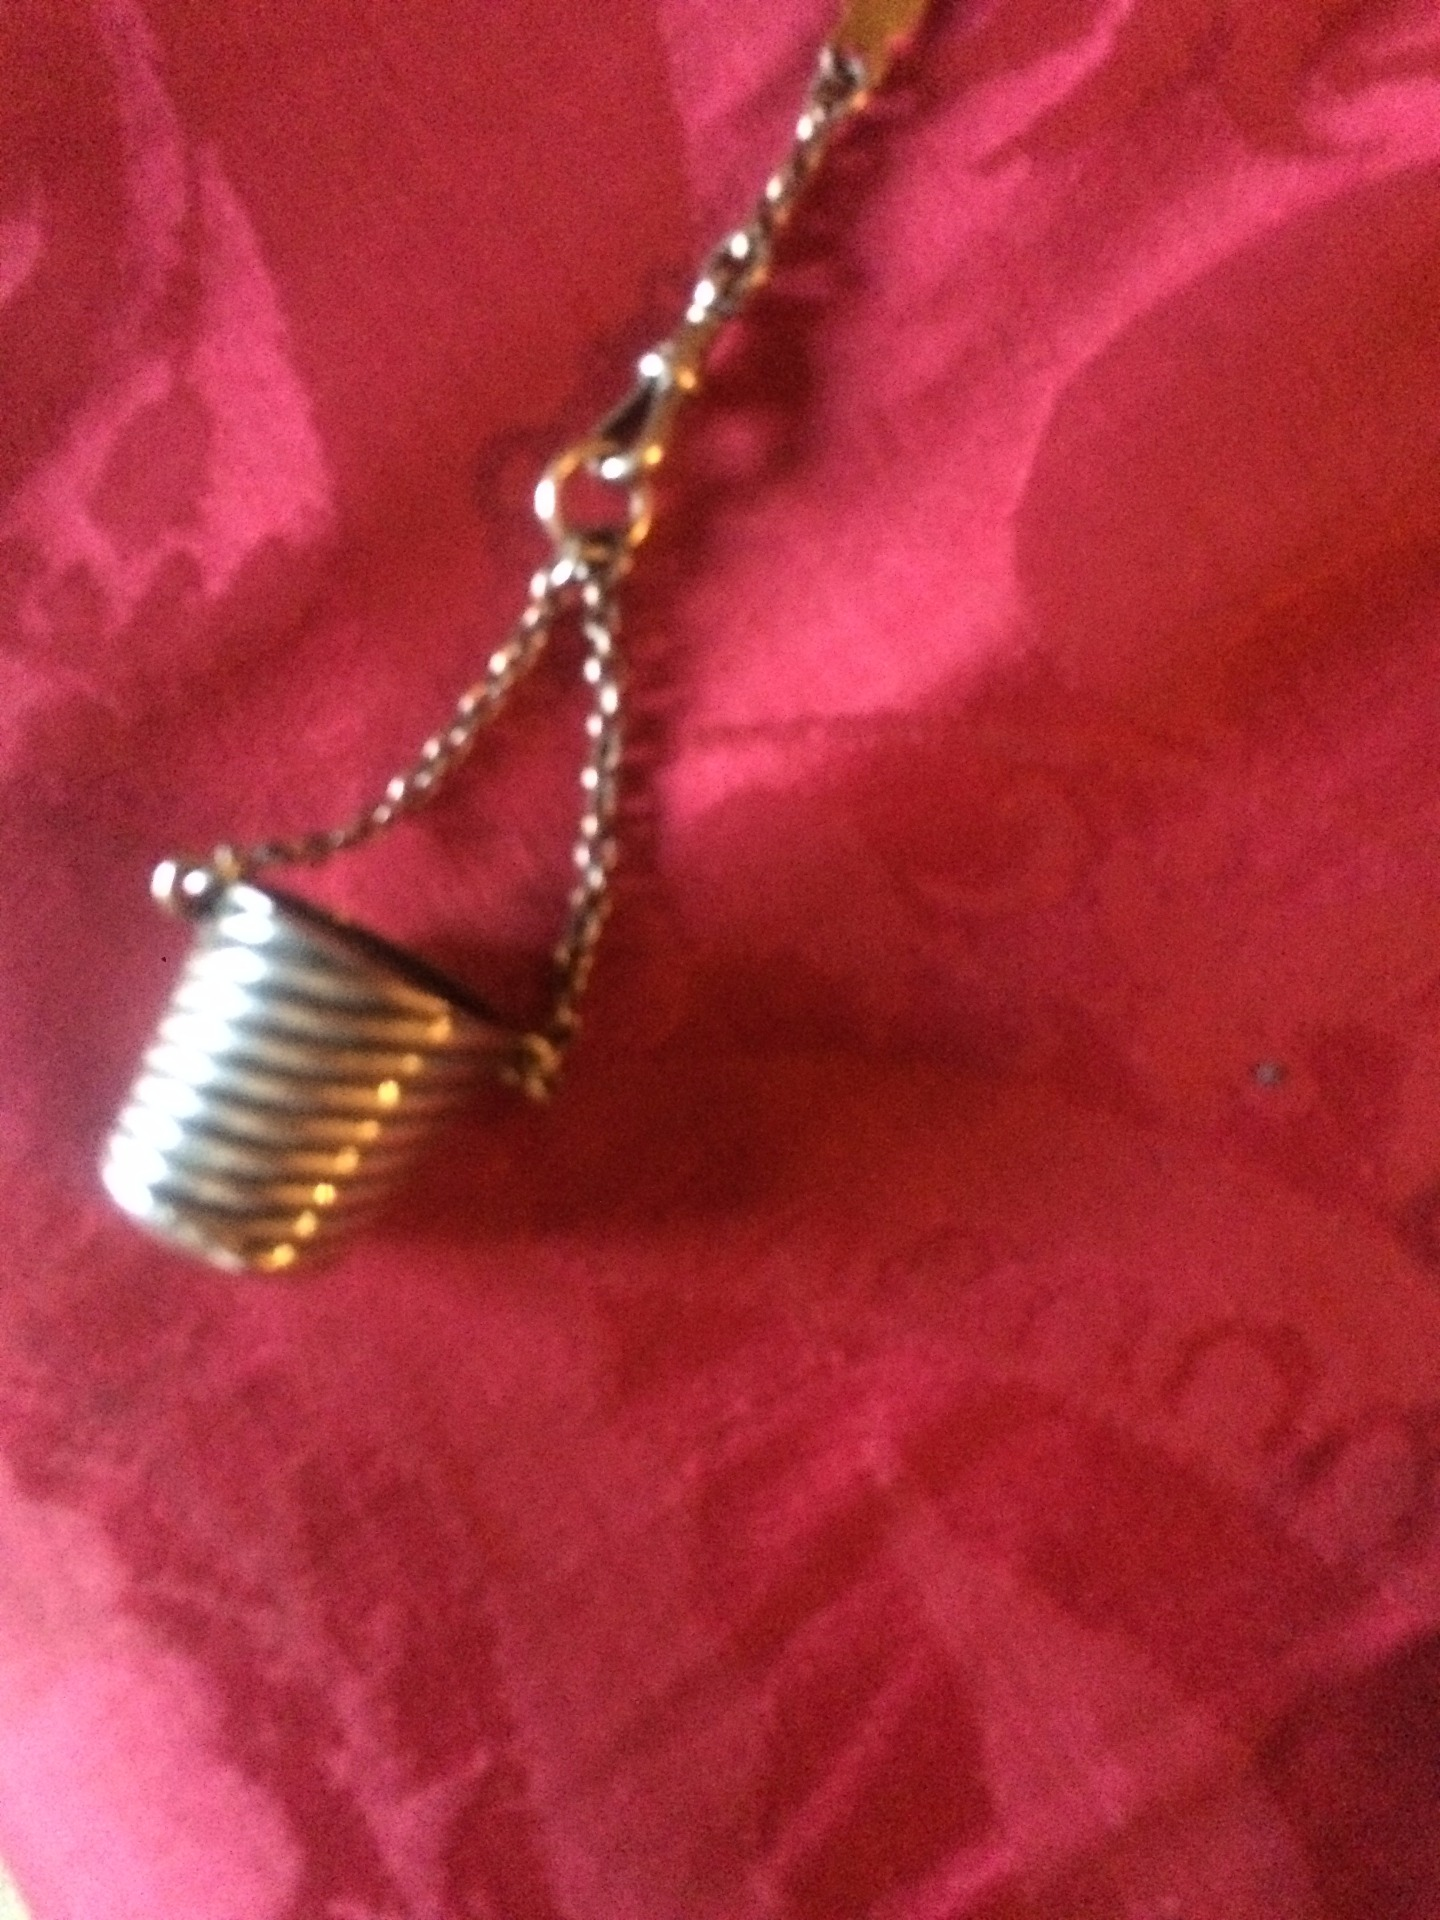 thumb5|Chatelaine in argento inglese